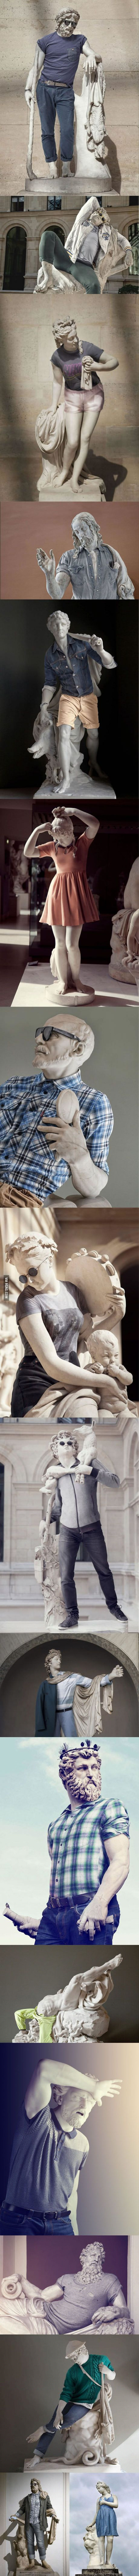 Ancient Greek sculptures dressed up in hipster clothing.